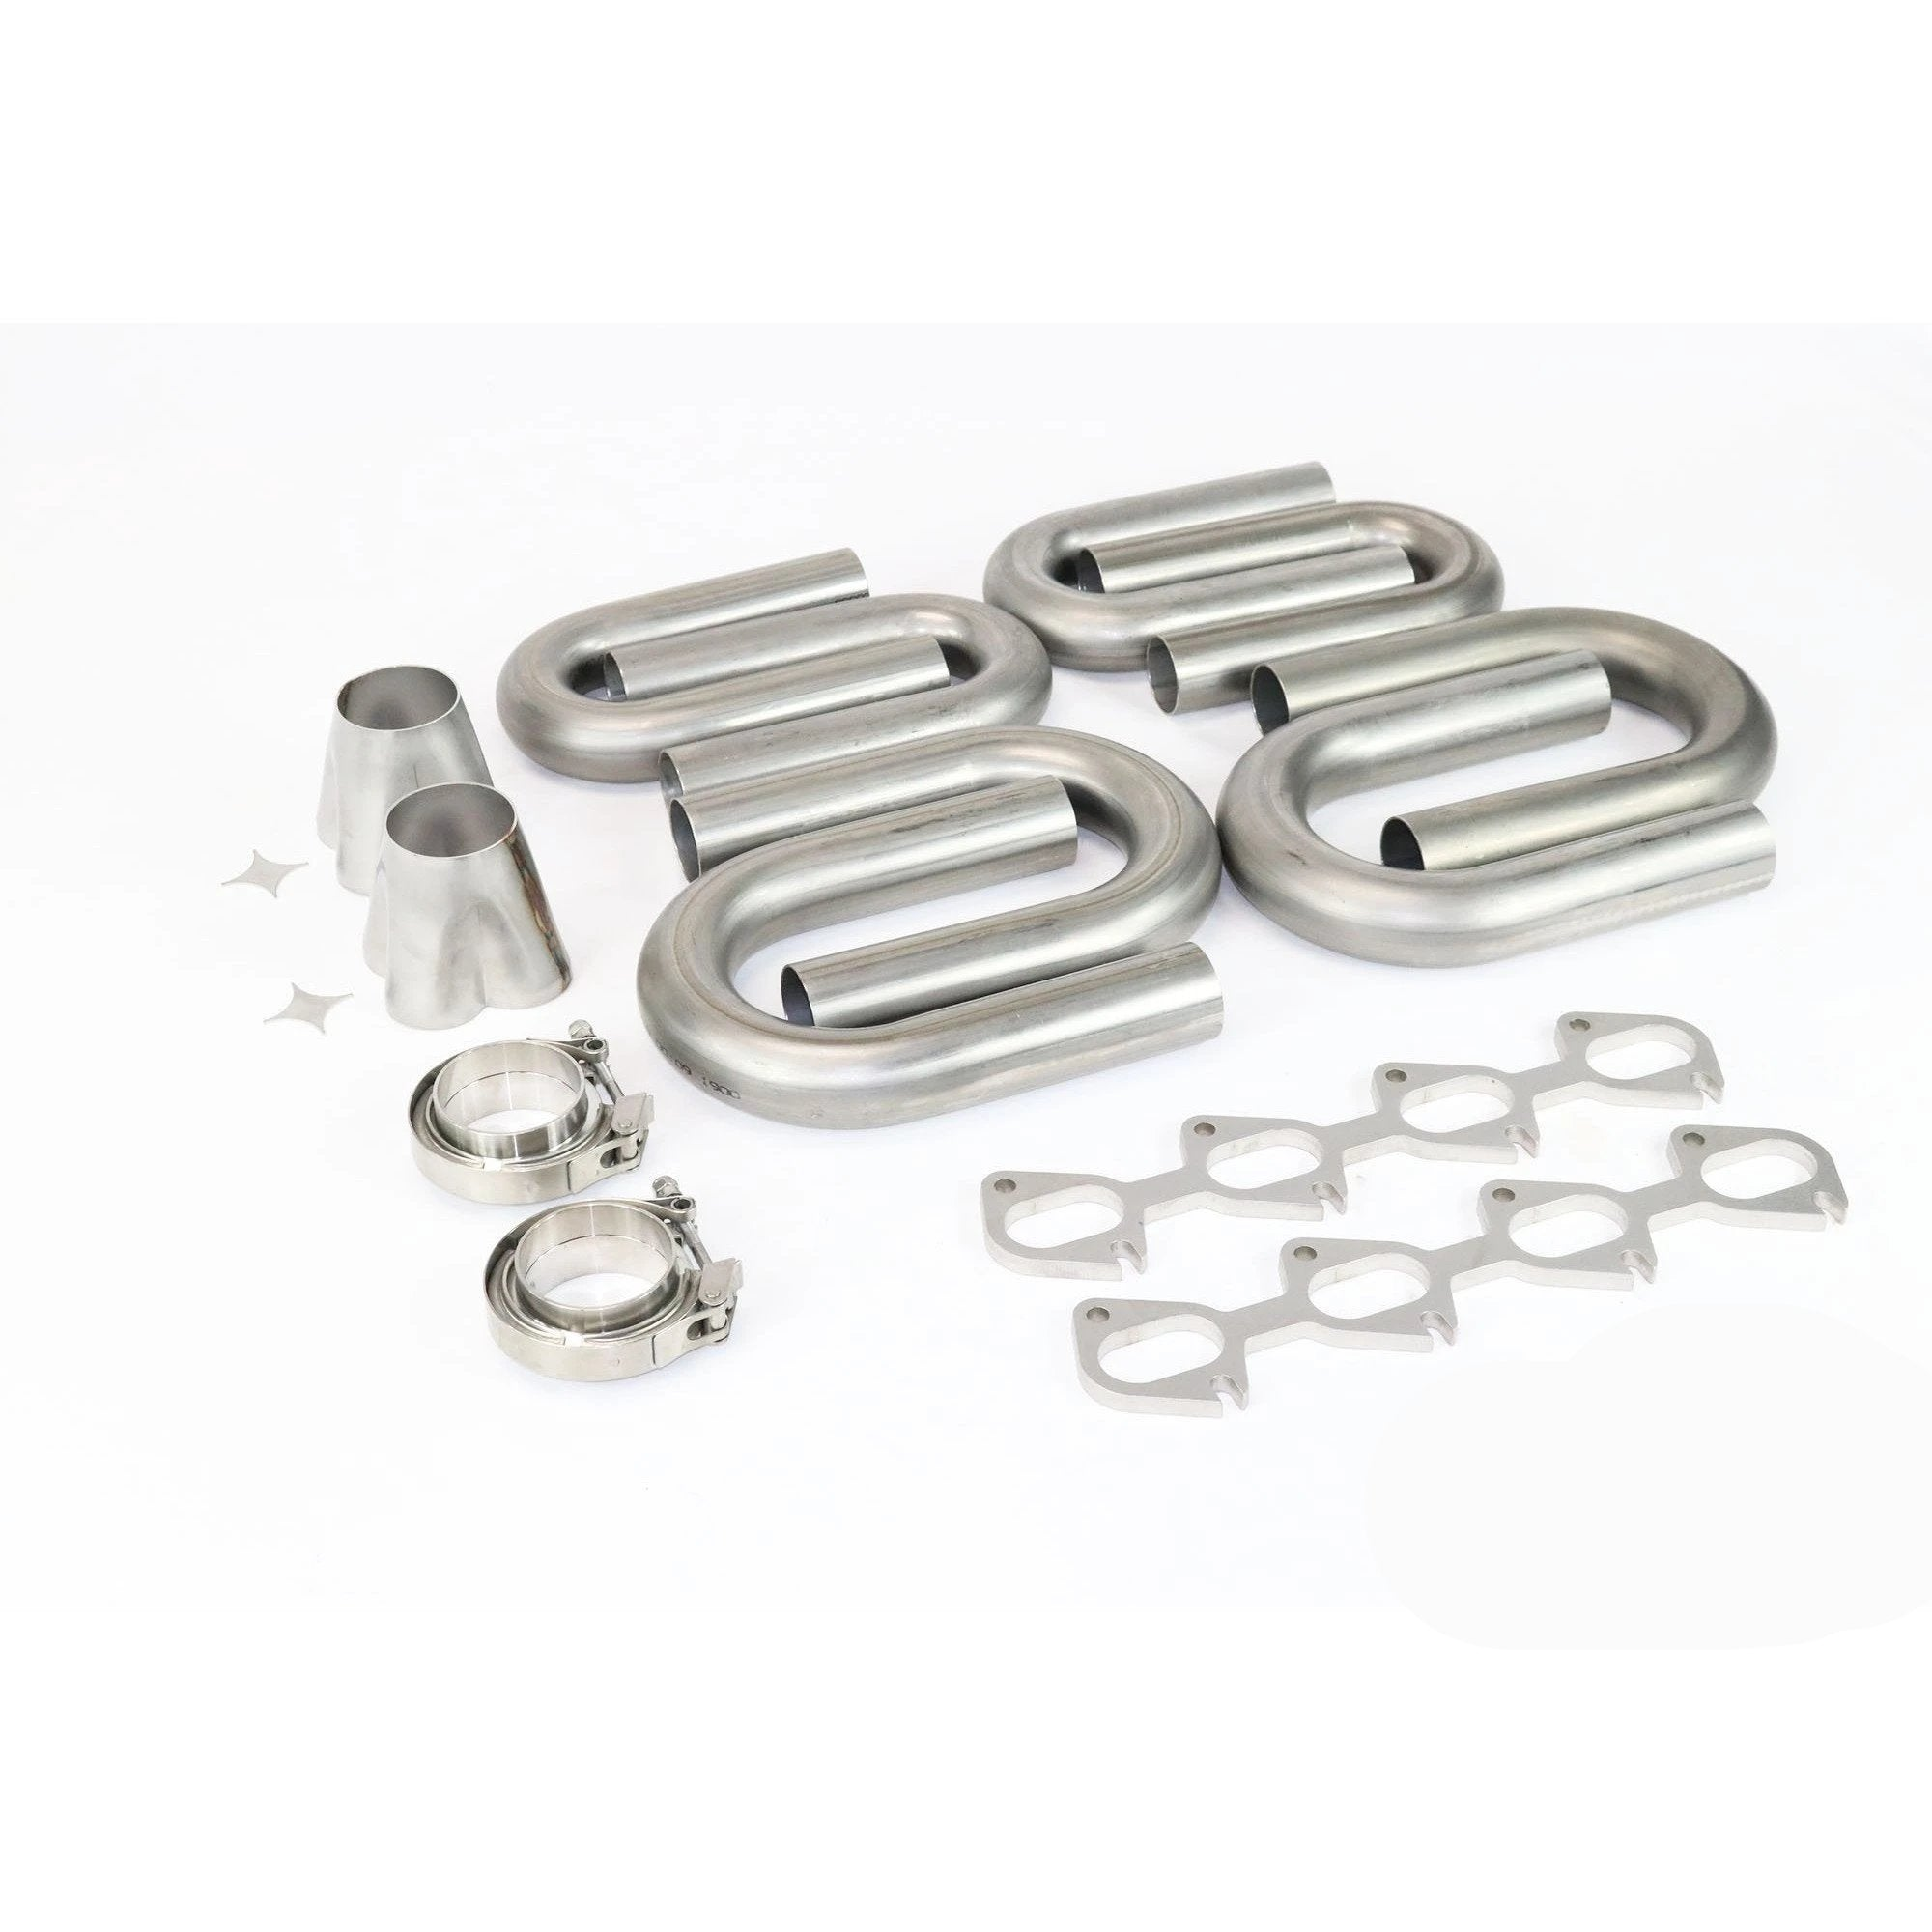 Ford Modular 4V 4.6 5.4 304 Stainless Turbo Header Build Kit-Kit-Motion Raceworks